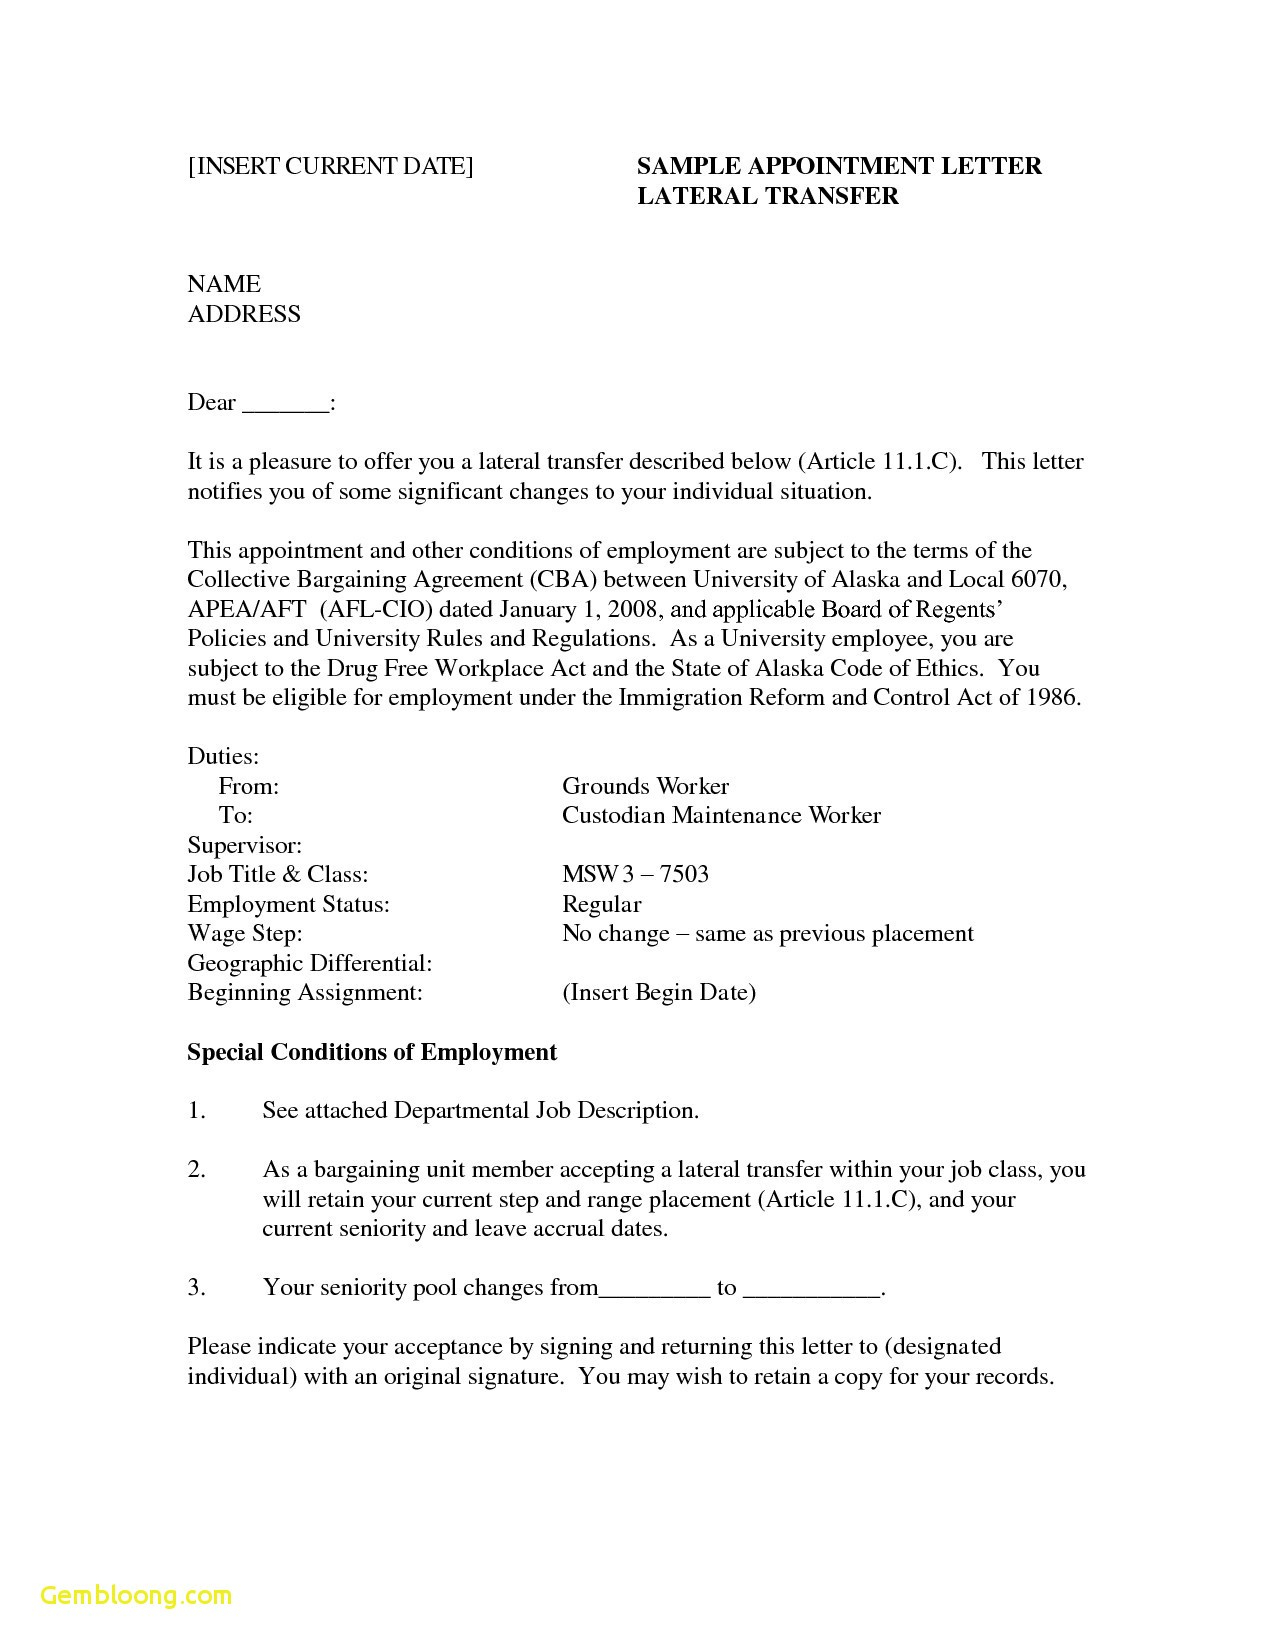 employee relocation letter template example-Supervisor Sample Resume Download now Cover Letter Template Word 2014 Fresh Relocation Cover Letters Od 9-f